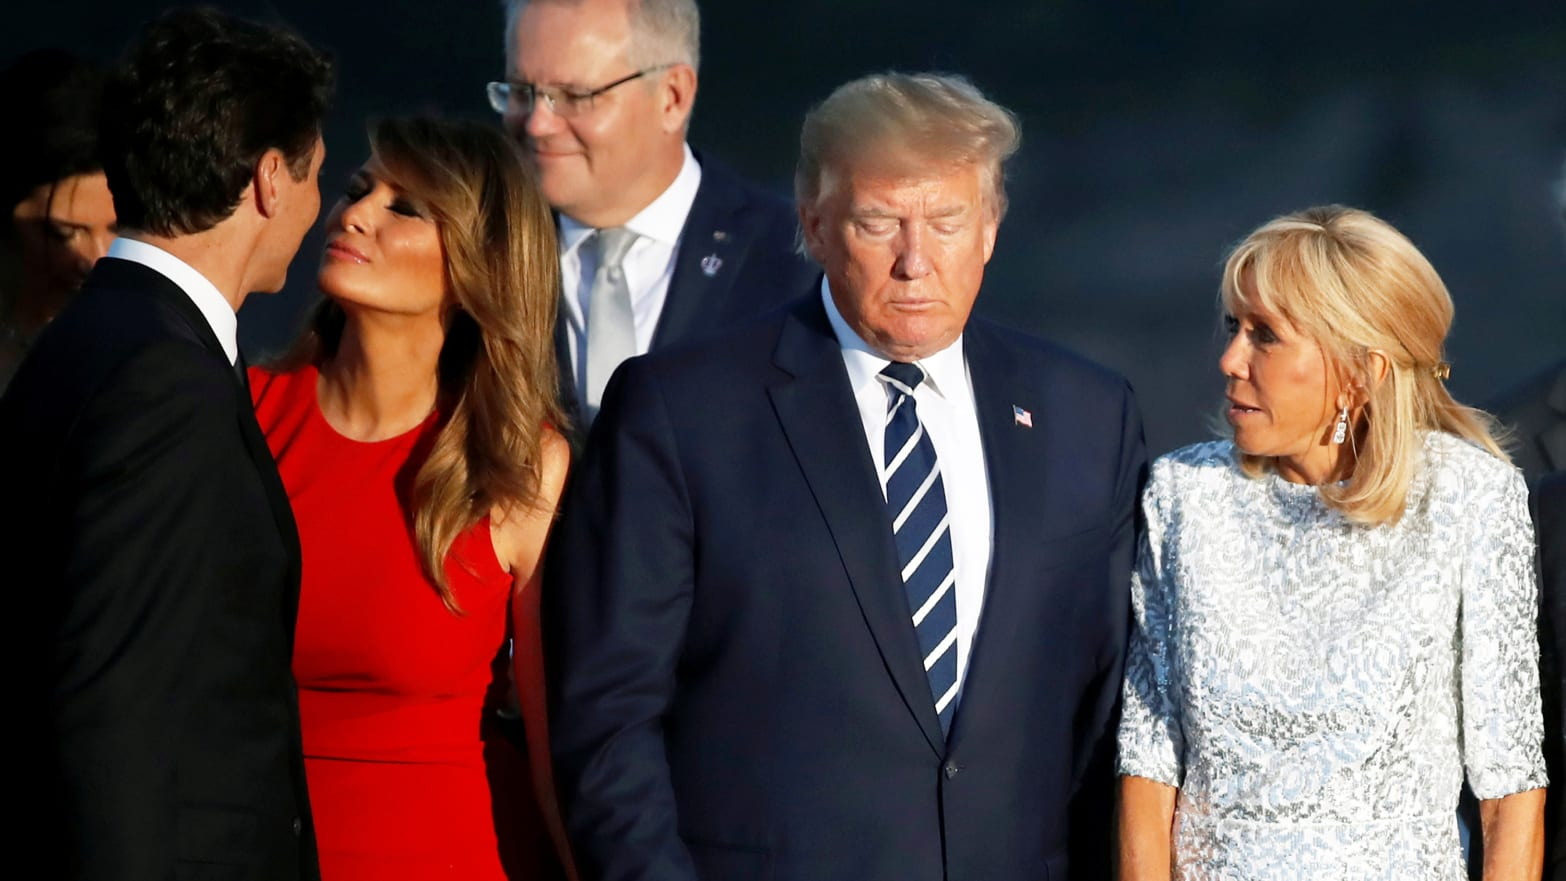 Melania Gazed at Justin Trudeau in the Perfect Red Dress. The Rest of Her G7 Fashion Was Pure One Percent.